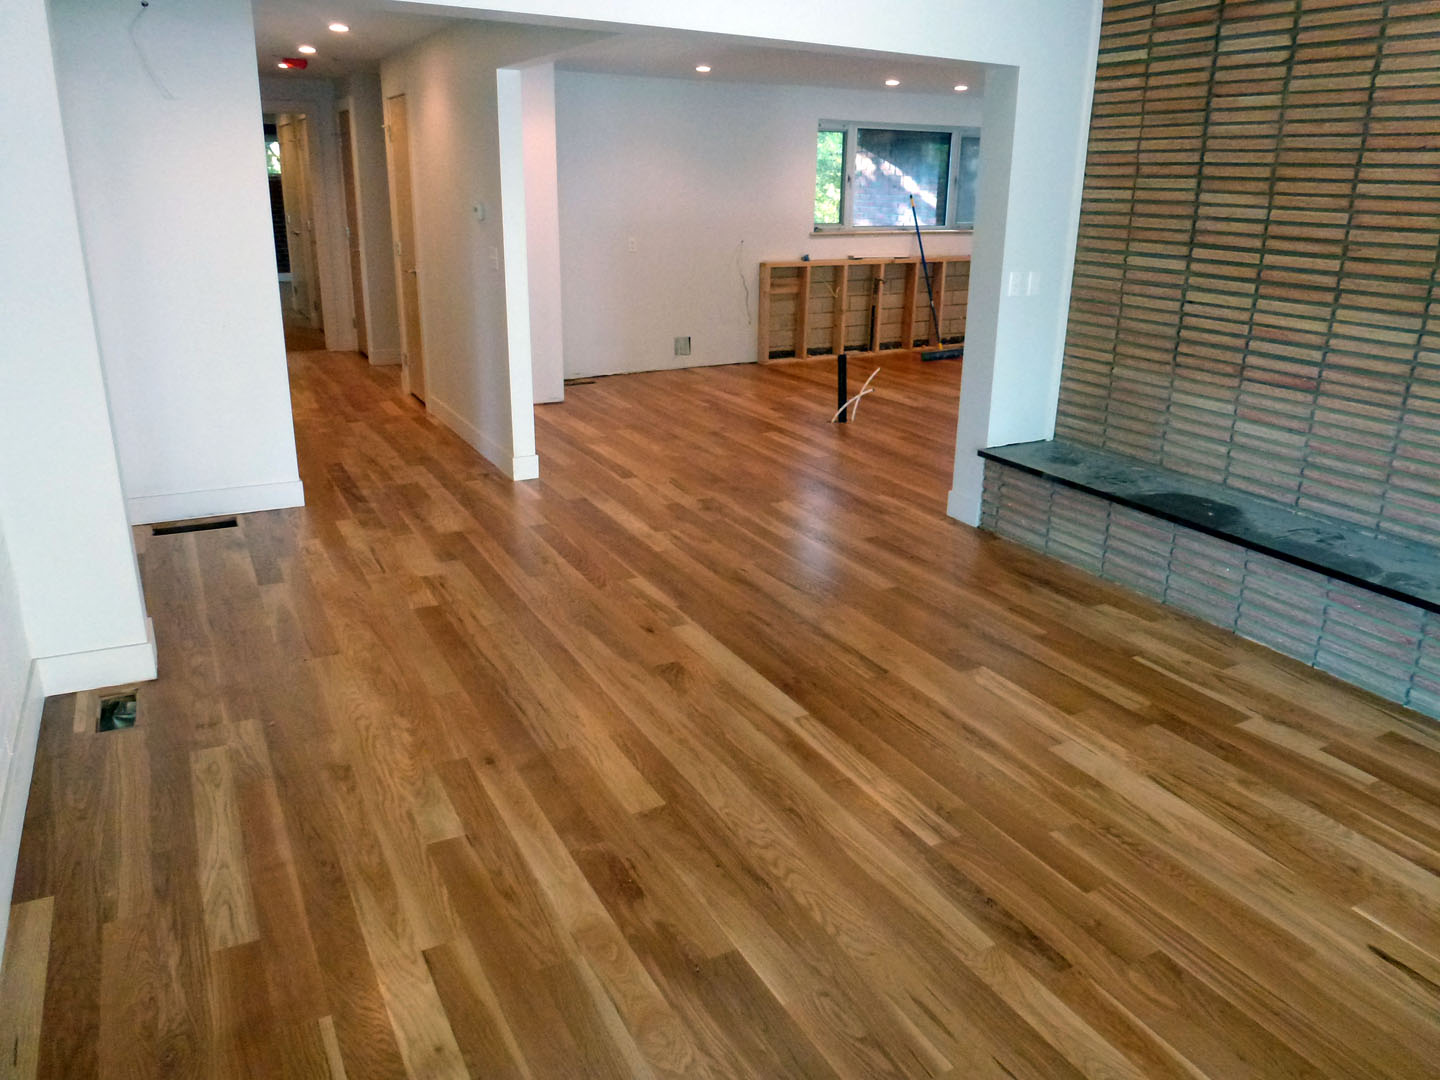 Micmar Wood Flooring Amp Design Phoenix Arizona Proview